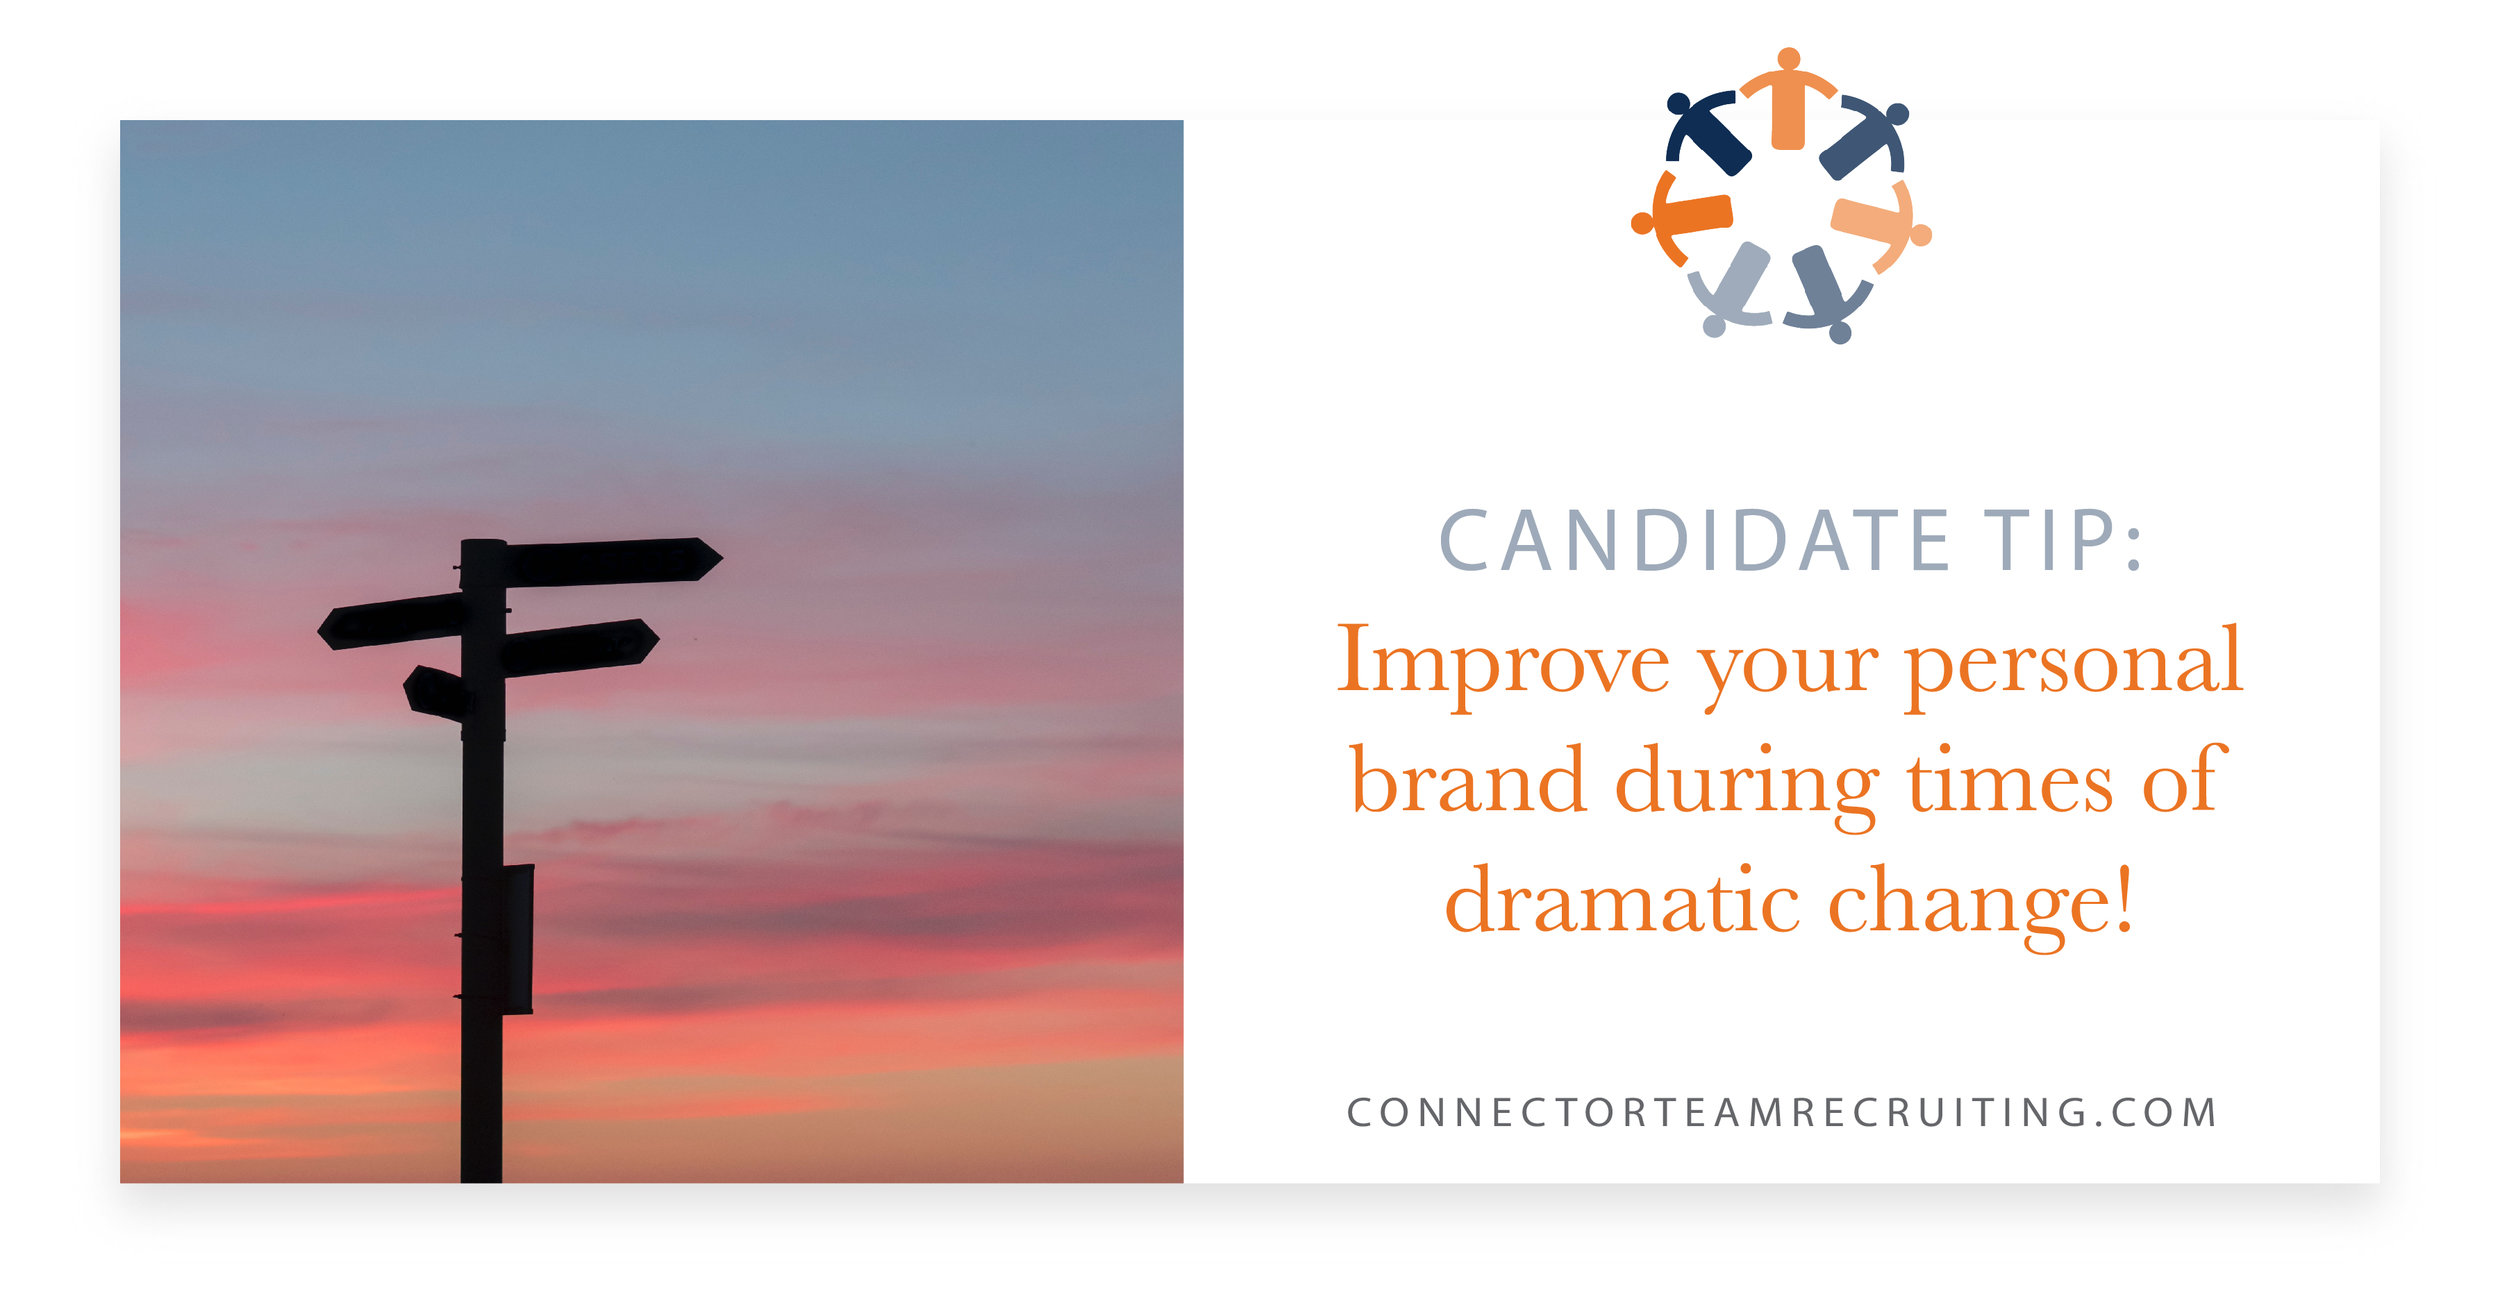 Candidate Tip – Improve your personal brand during times of dramatic change | Connector Team Recruiting.jpg